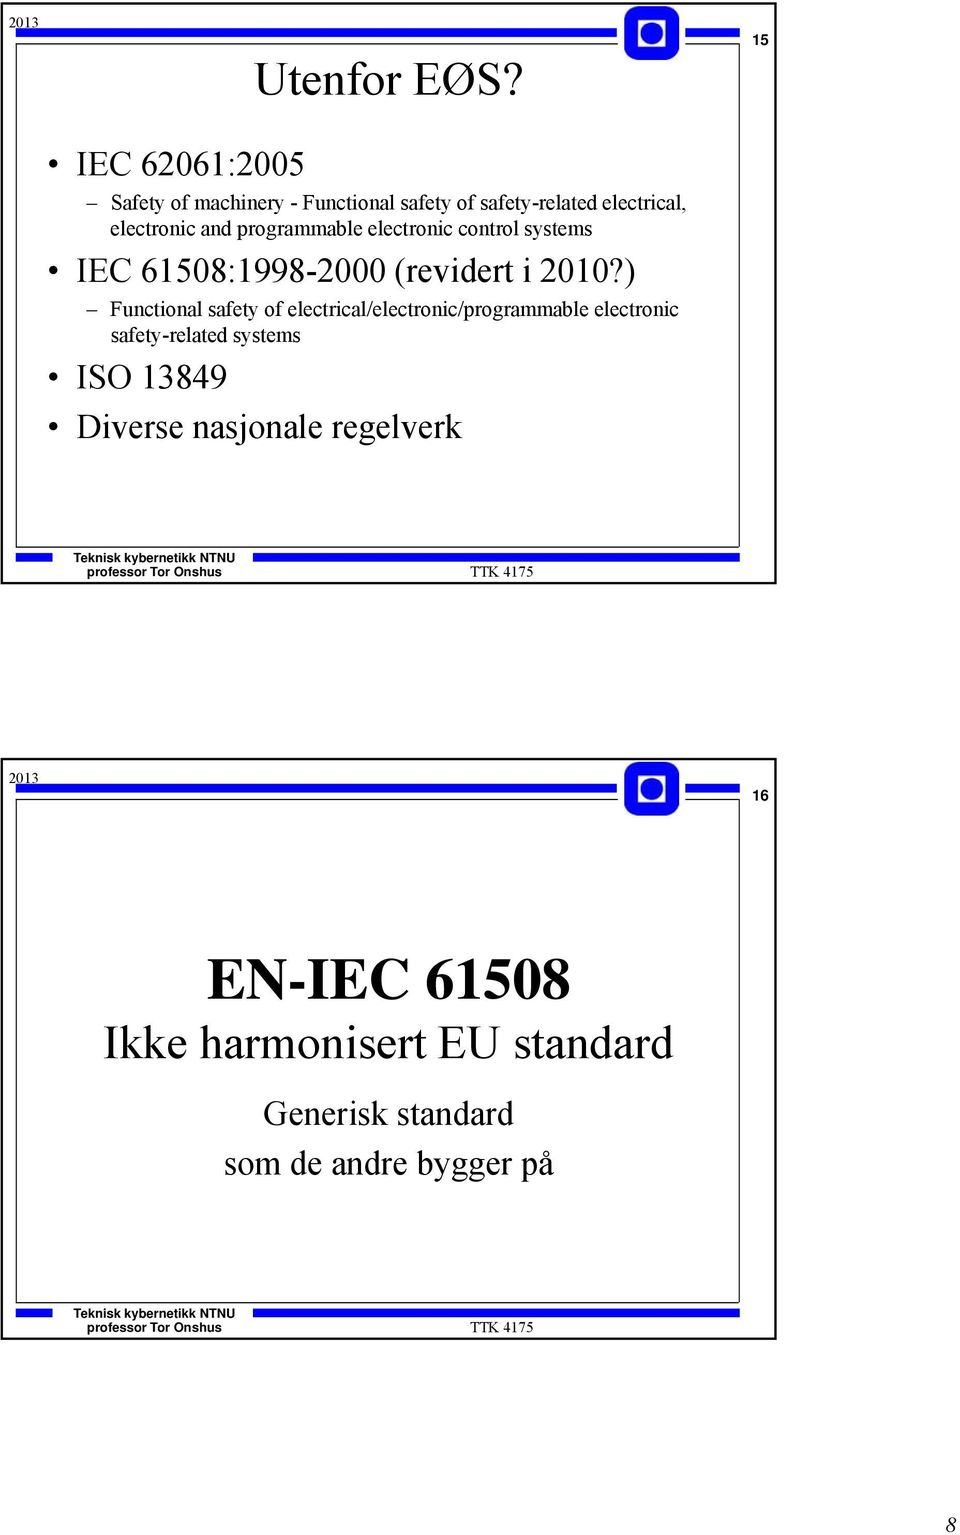 programmable electronic control systems IEC 61508:1998-2000 (revidert i 2010?